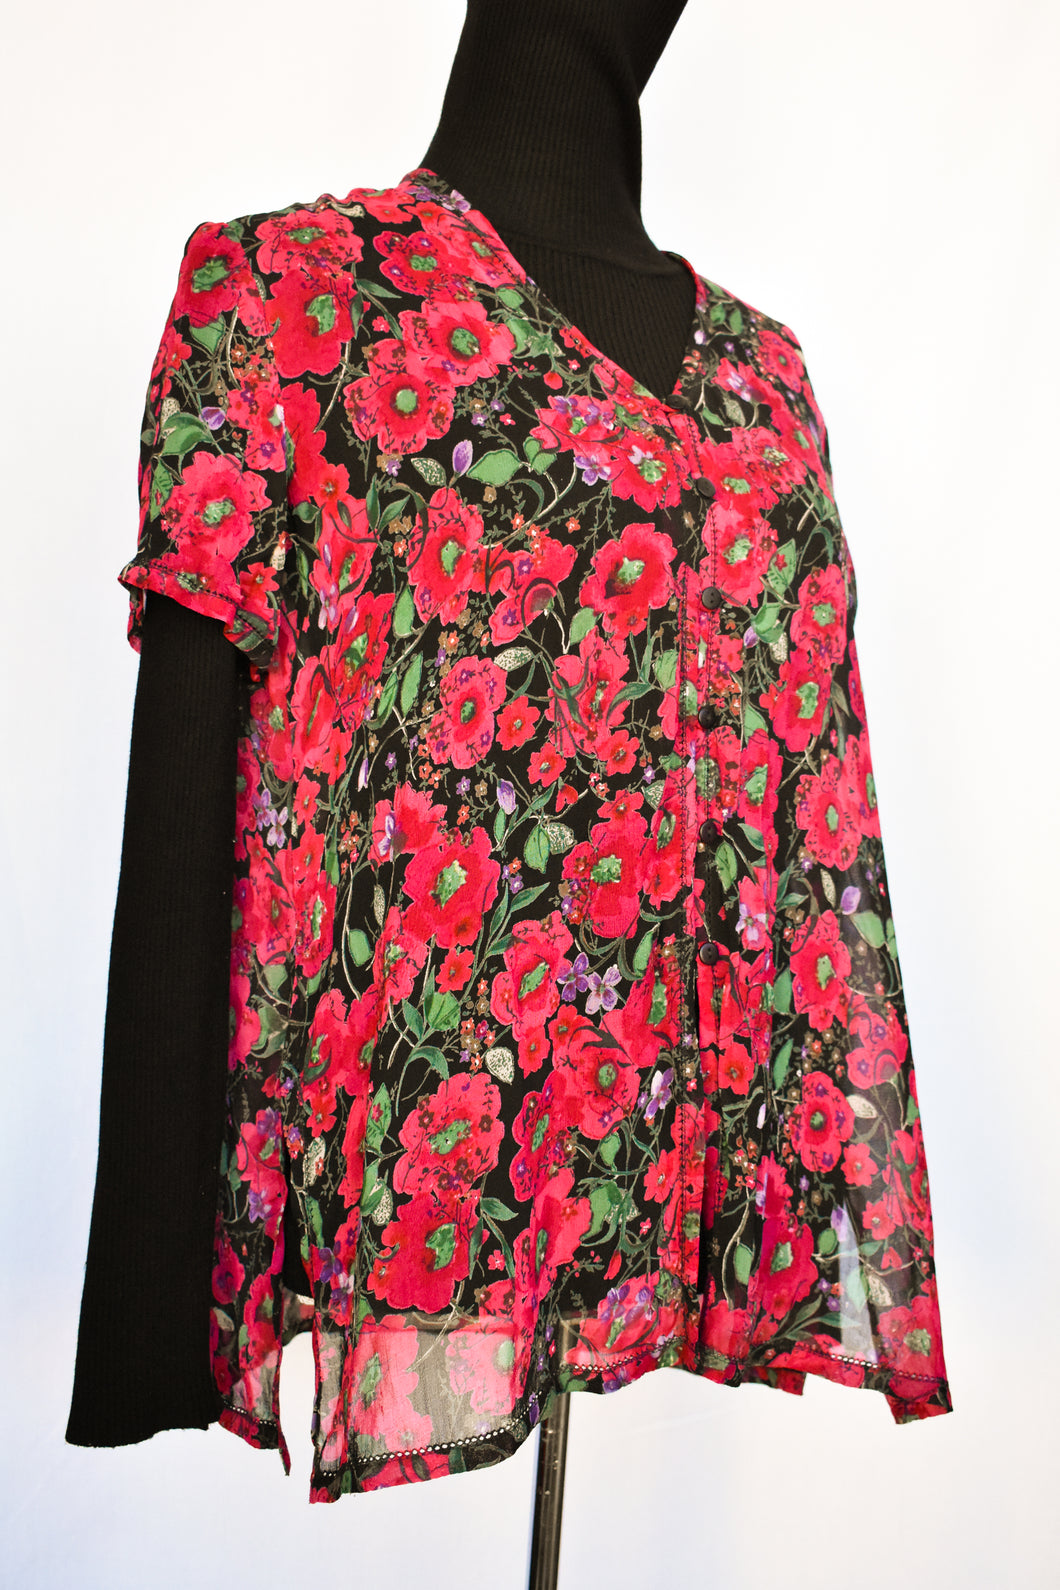 Monsoon floral sheer top, size S